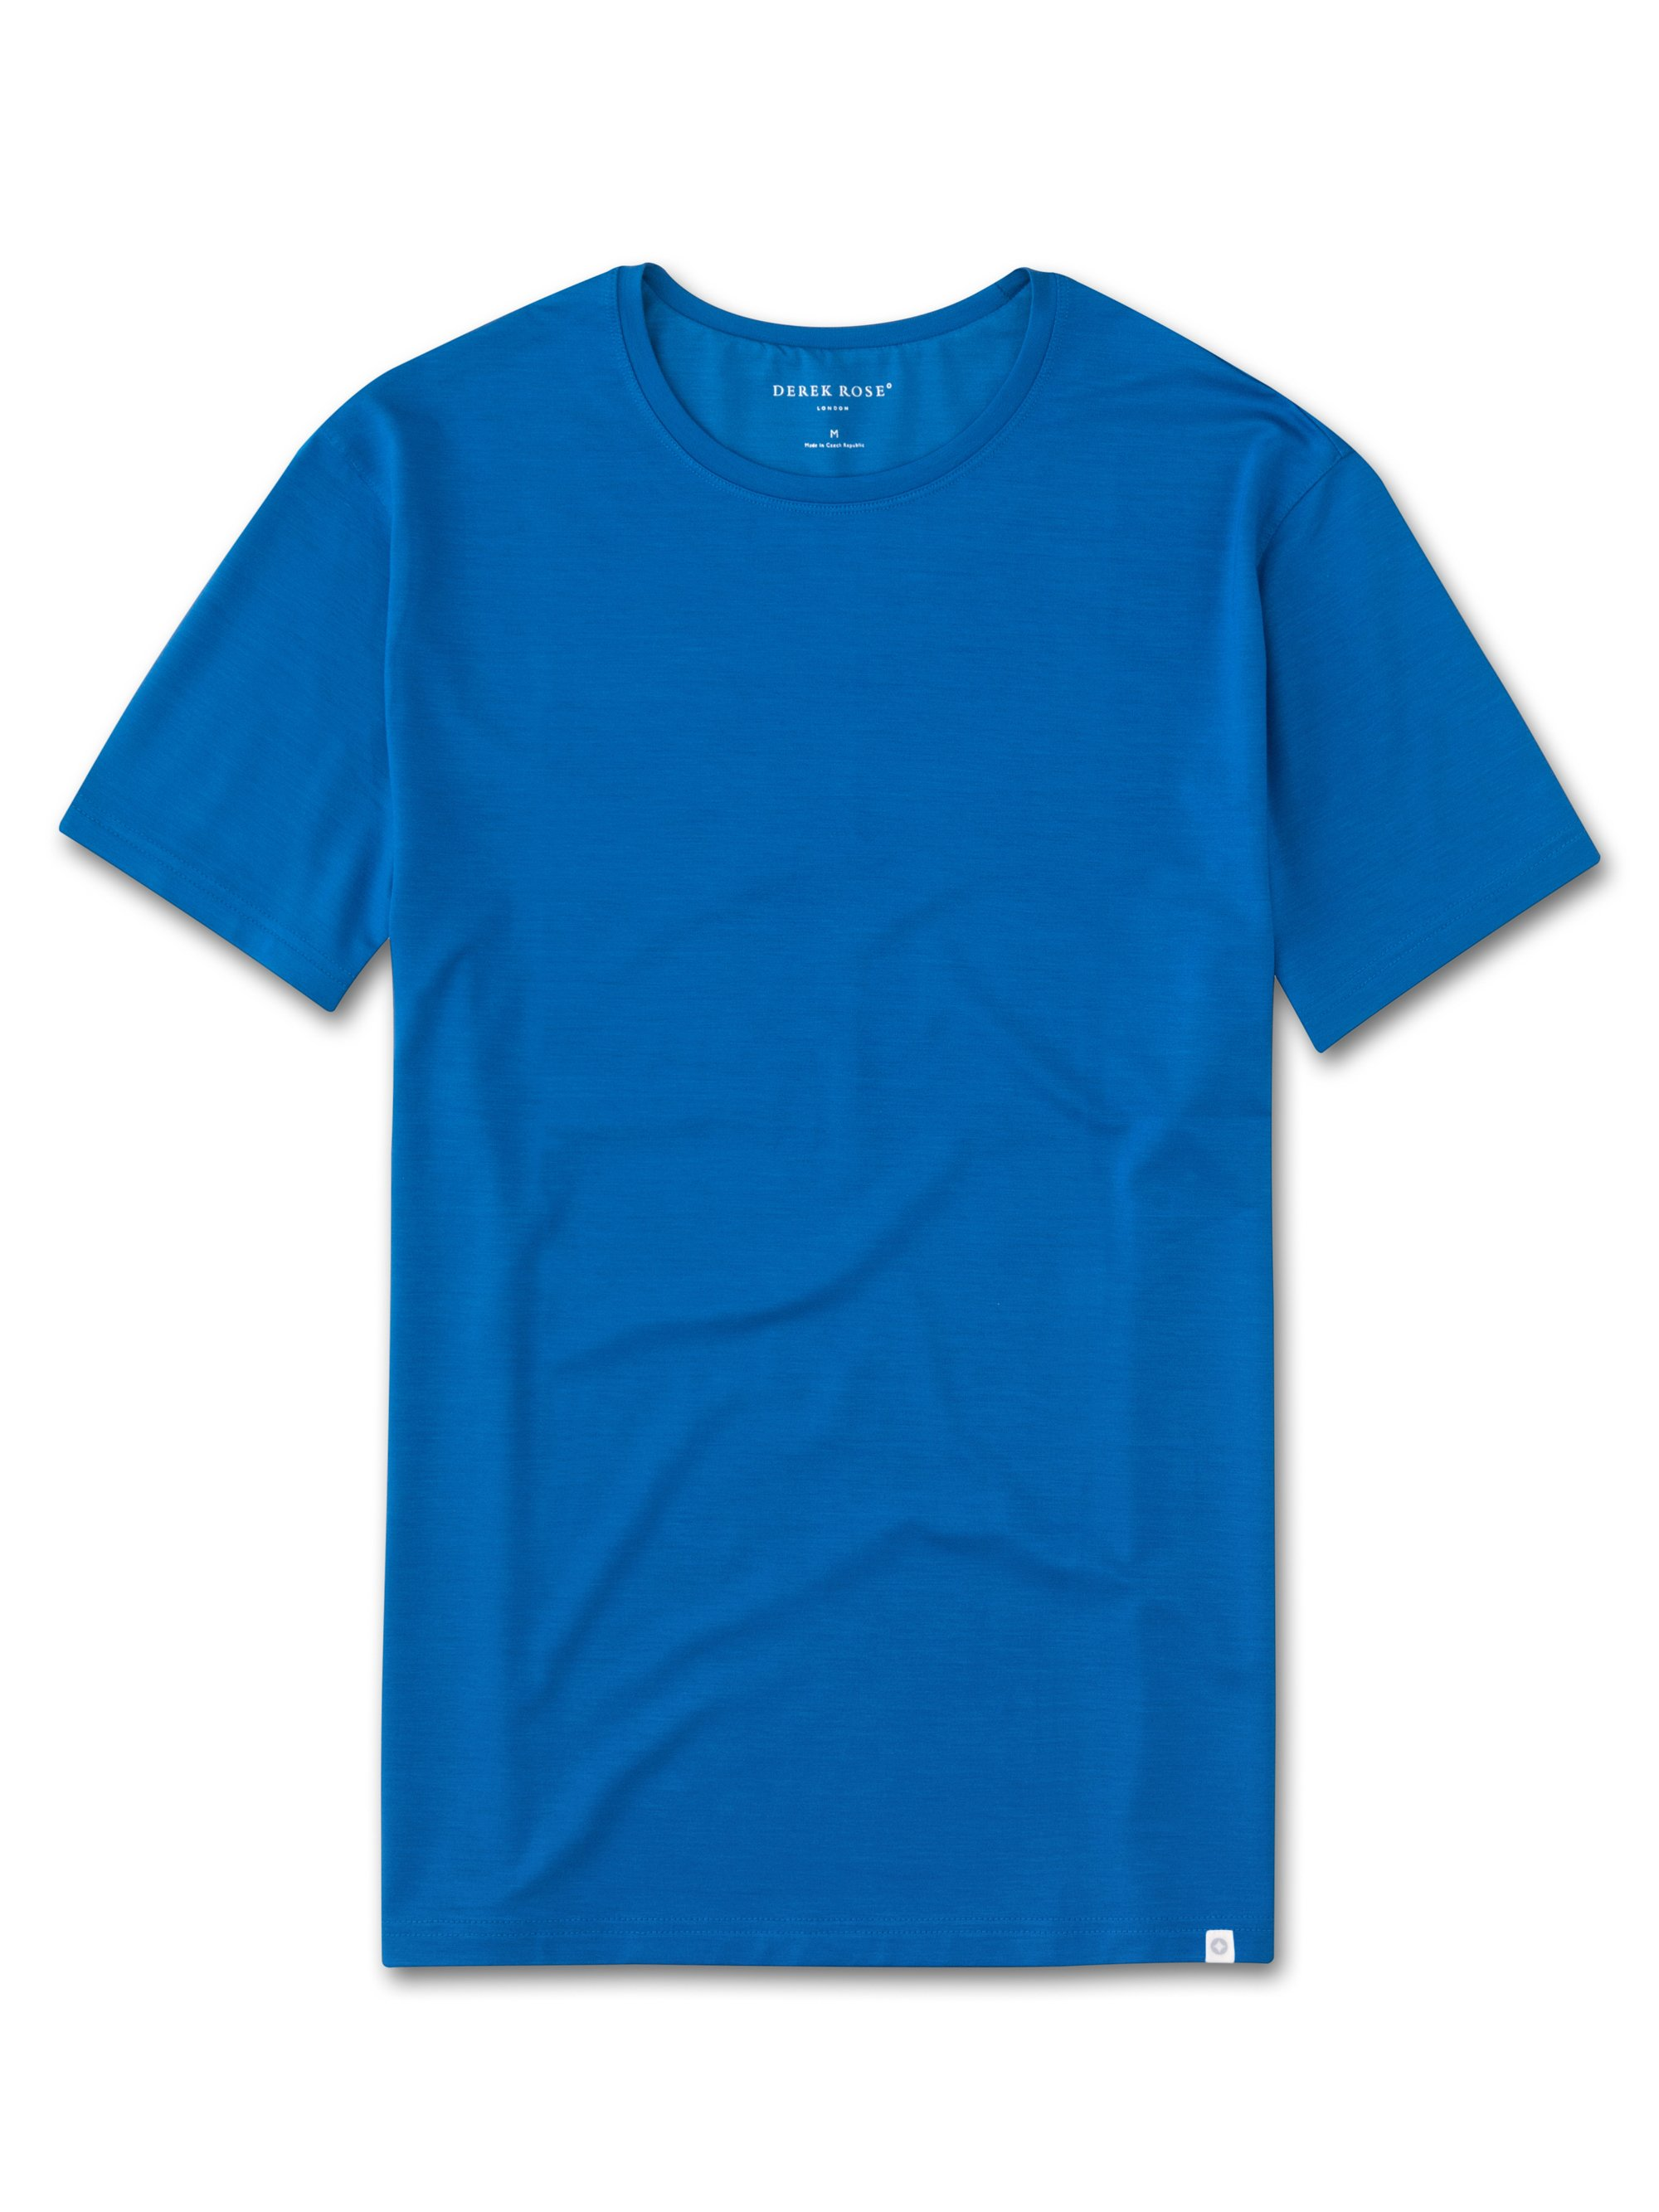 Men's Short Sleeve T-Shirt Basel 2 Micro Modal Stretch Blue